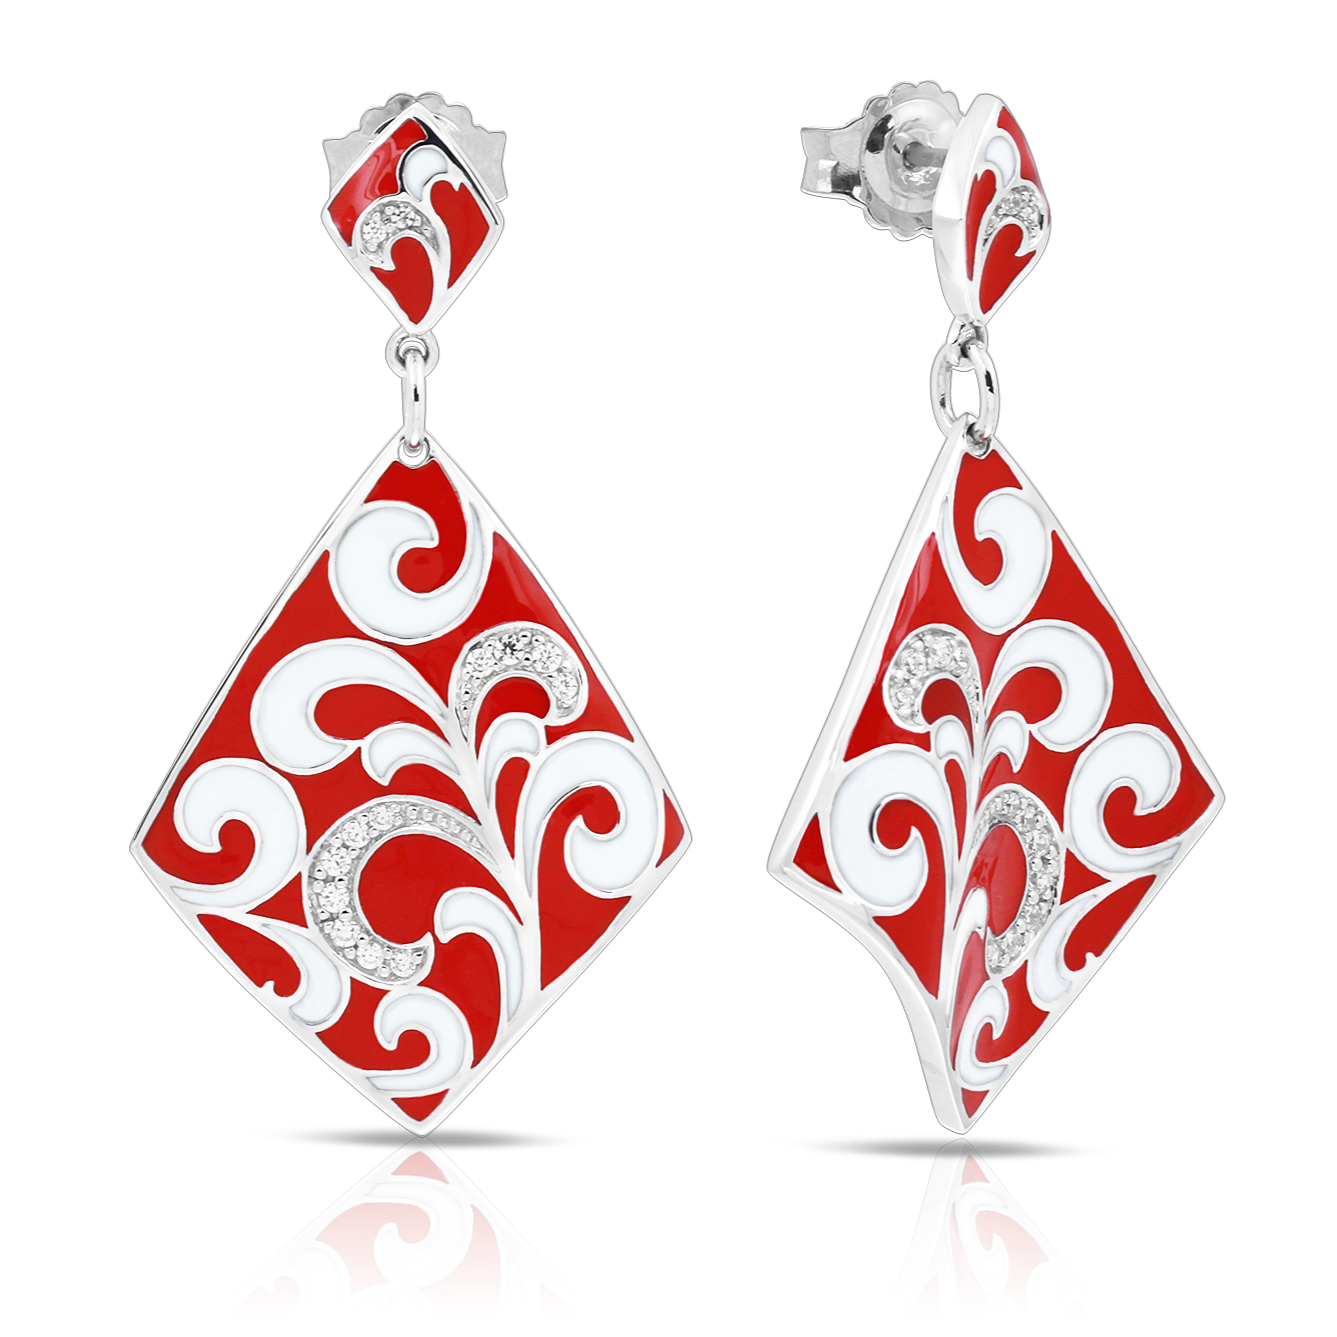 Belle Étoile Contessa Red Earrings in Sterling Silver